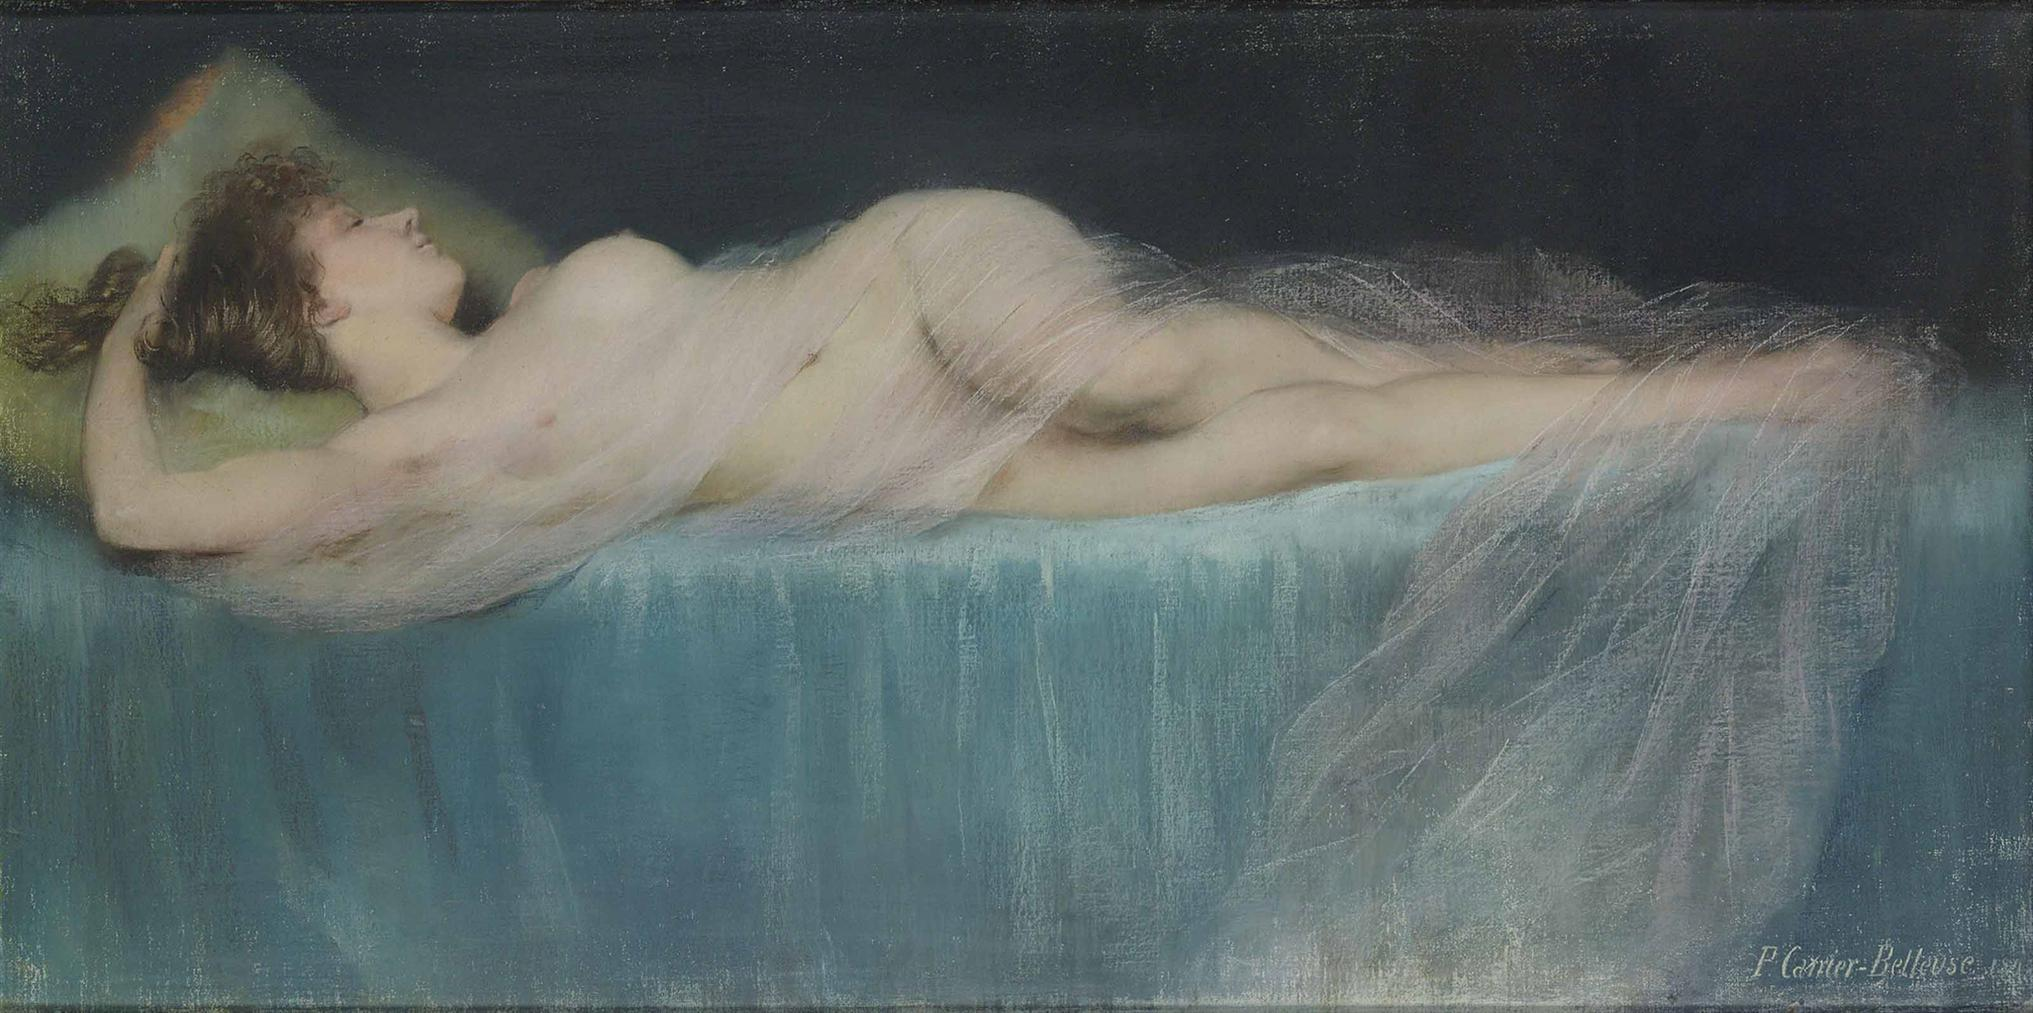 Pierre Carrier-Belleuse - Sleeping Nude-